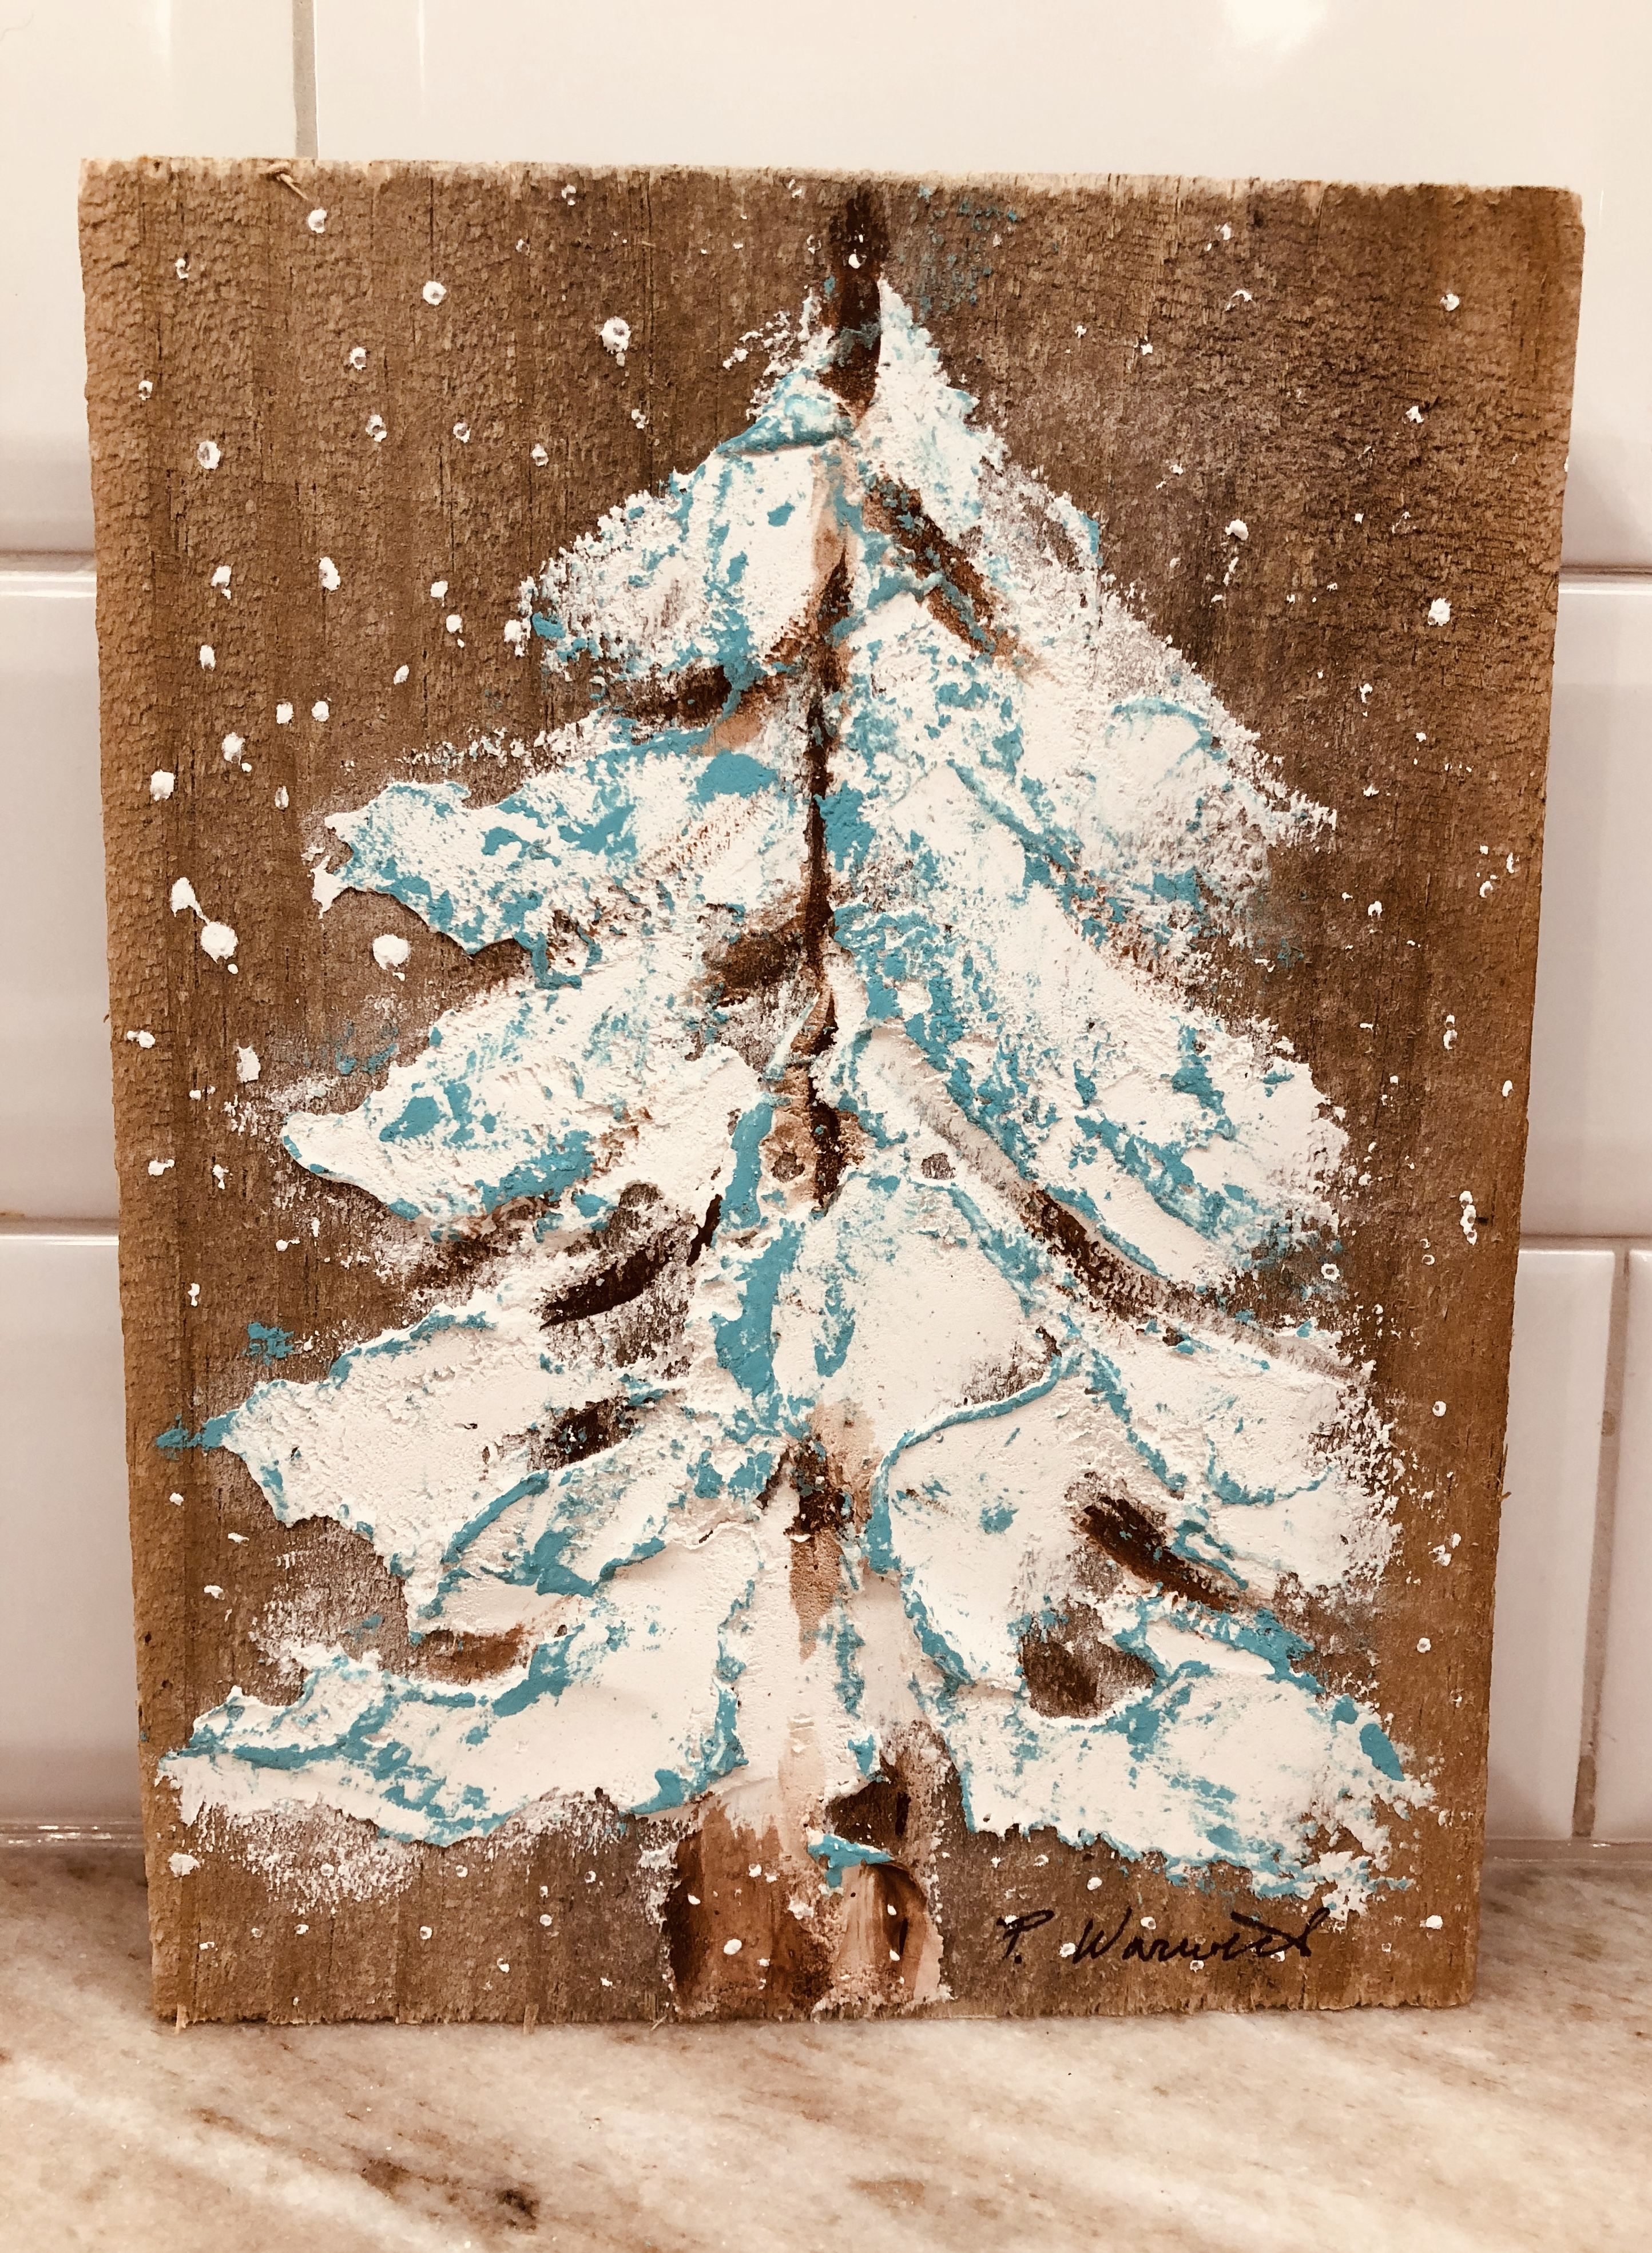 Pin by Phyllis Warwick on Art | Tile art, Painting on wood ...